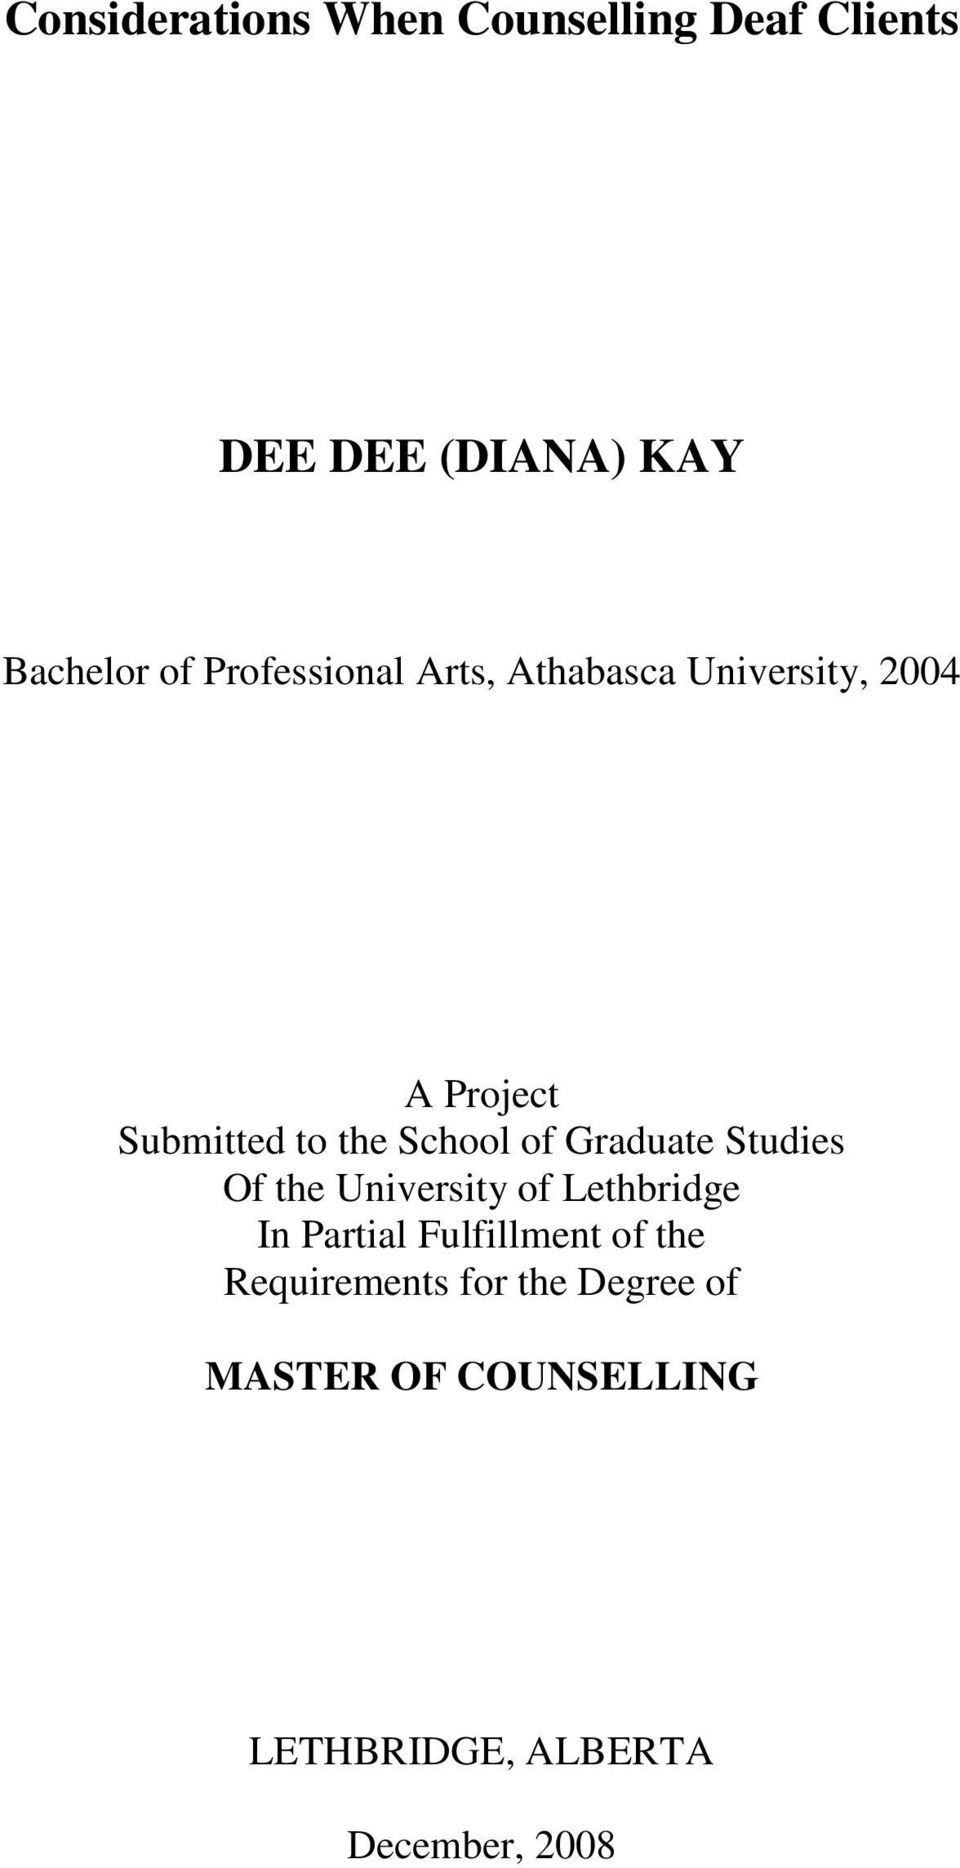 of Graduate Studies Of the University of Lethbridge In Partial Fulfillment of the